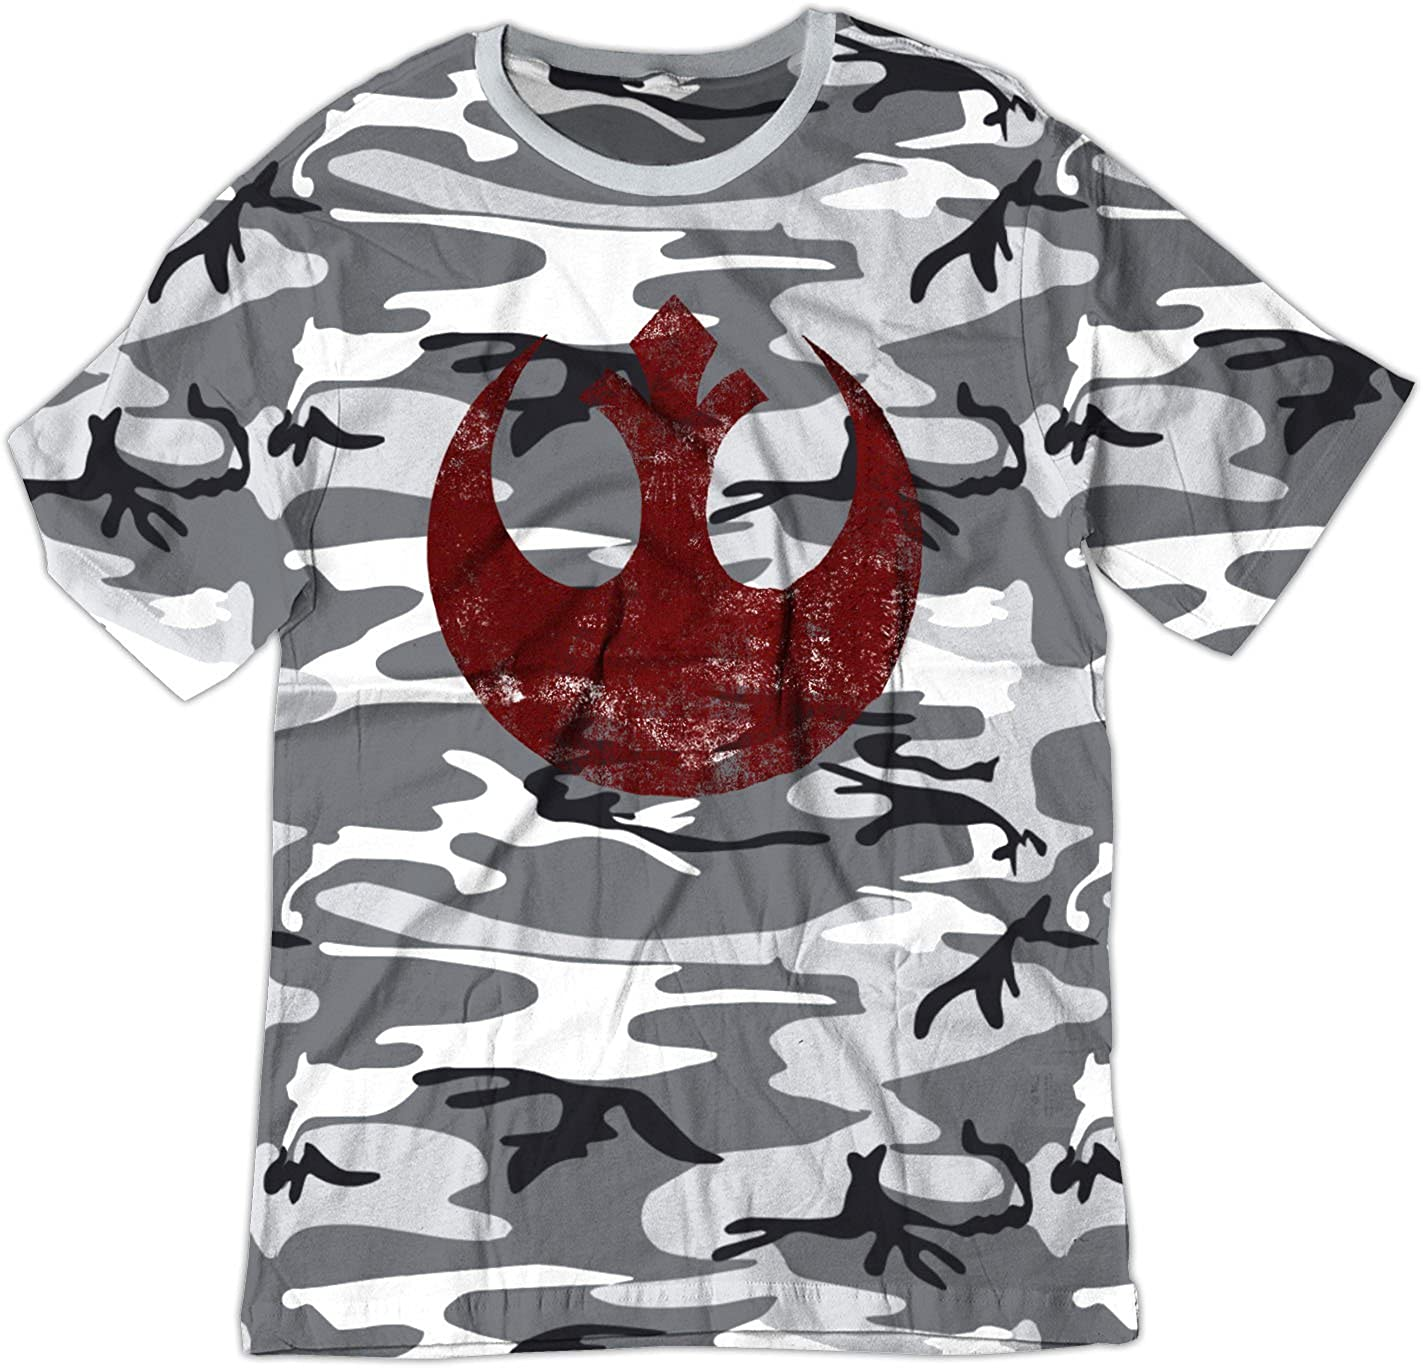 BSW Youth Star Wars Rebel Alliance Starbird Insignia Phoenix Shirt 1402-1Y